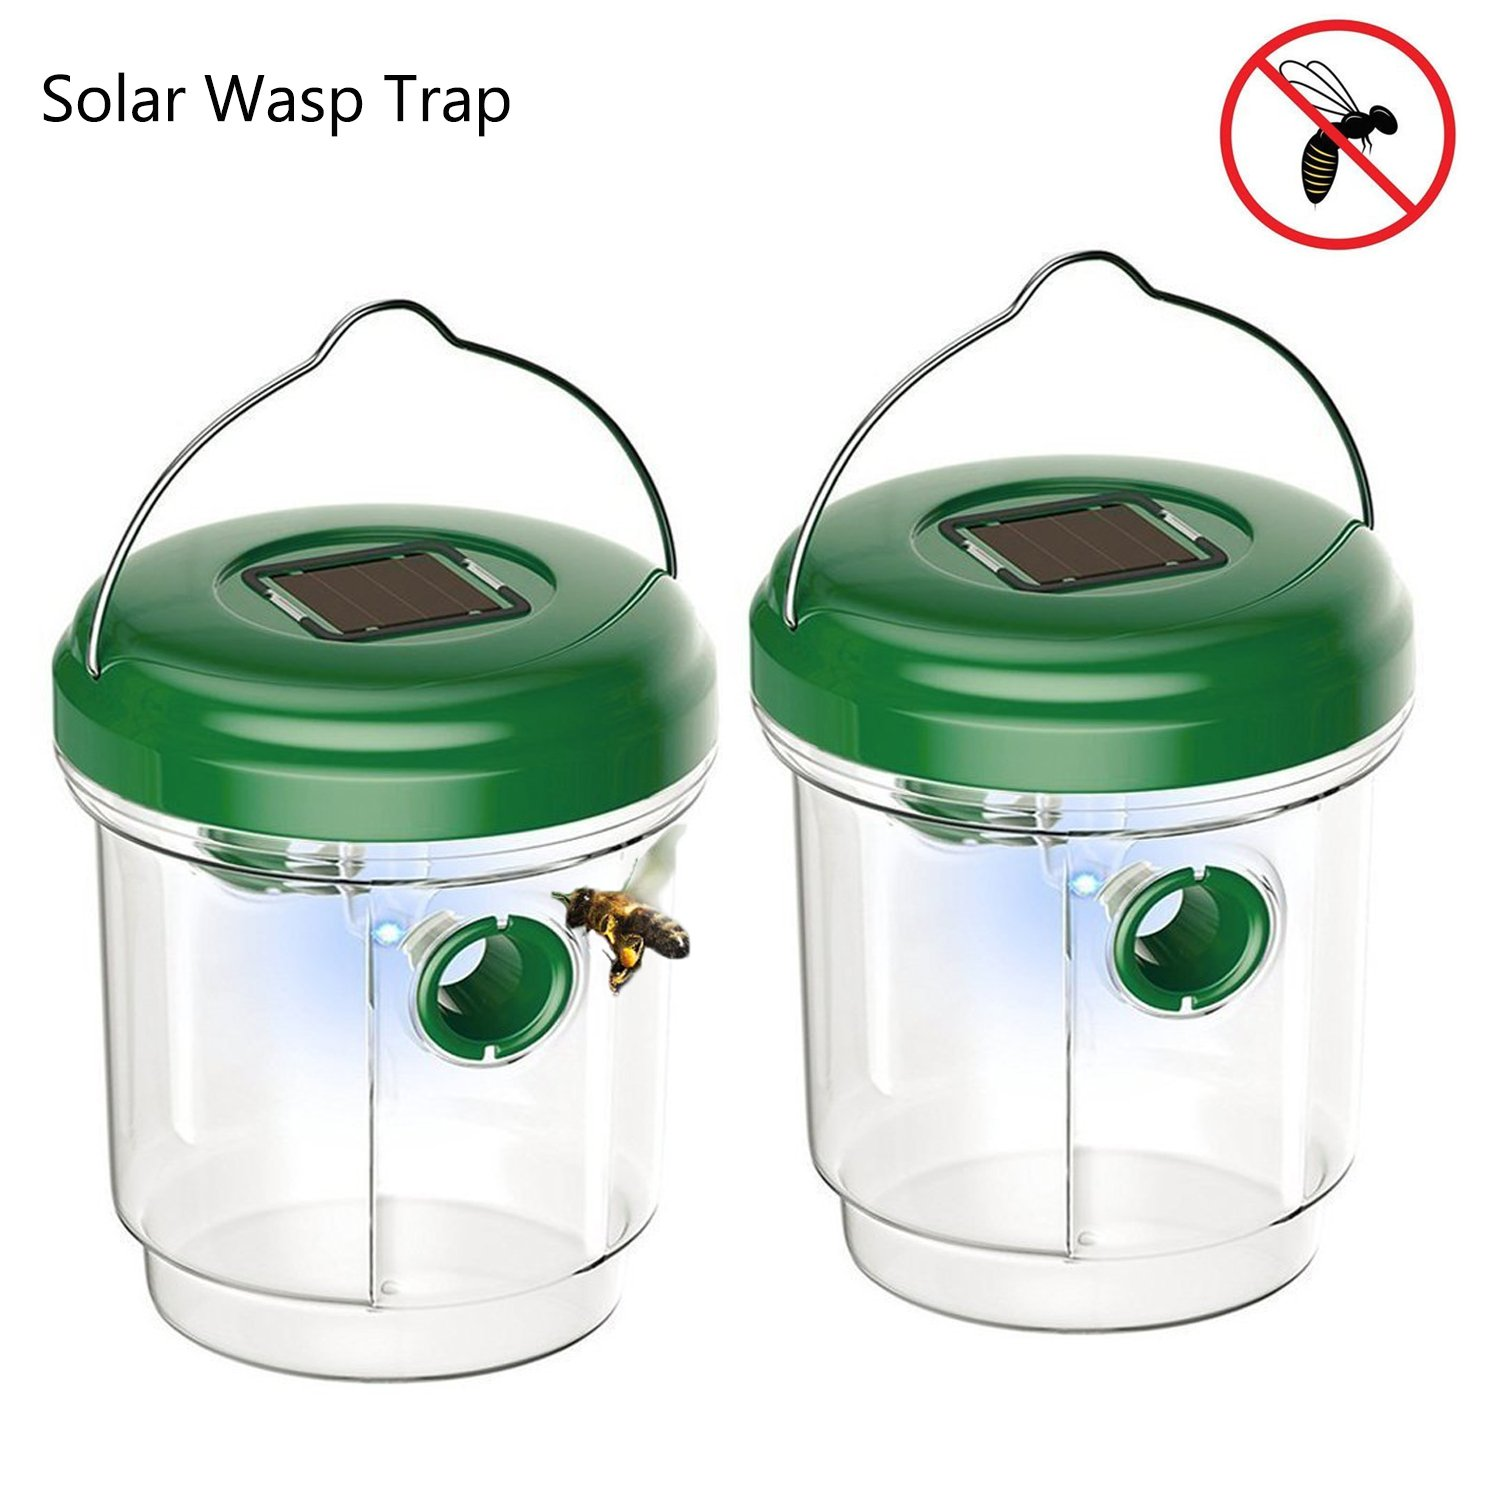 Kyerivs Wasp Trap Catcher with UV LED Light Upgraded Solar Powered Trap for Bees, Wasps, Hornets, Yellow Jackets, Bugs, Fly, Reusable(2 Pack)